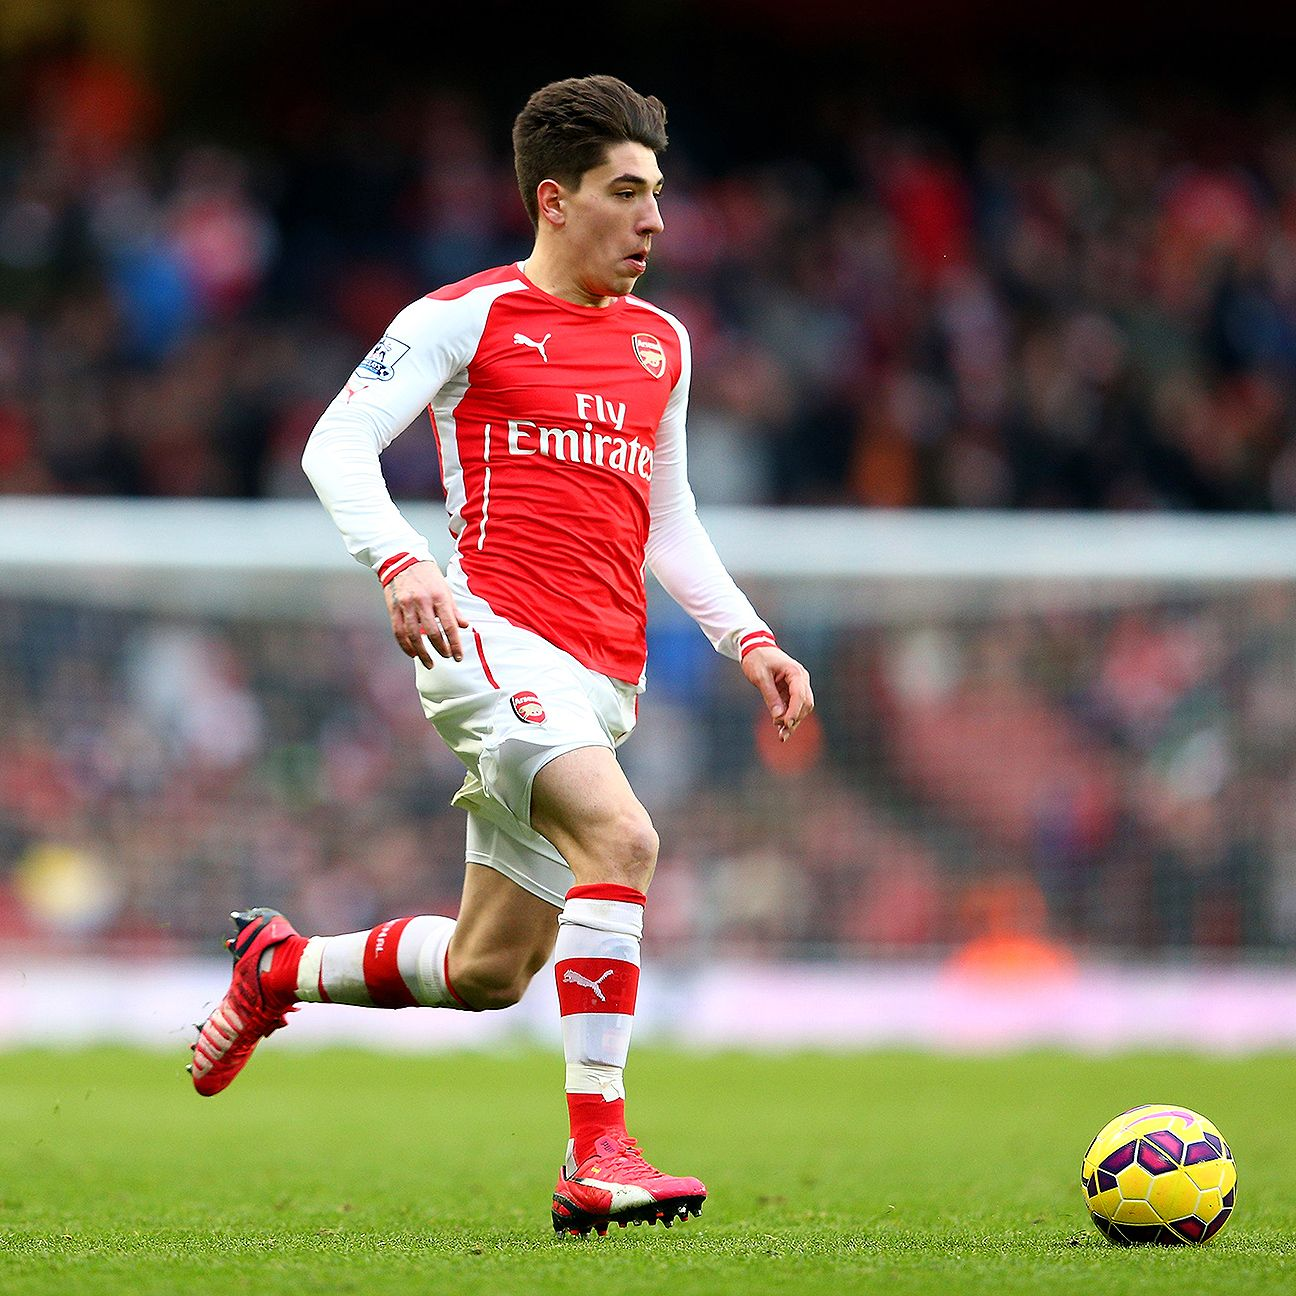 The speed gauntlet has been thrown down on Arsenal defender Hector Bellerin.